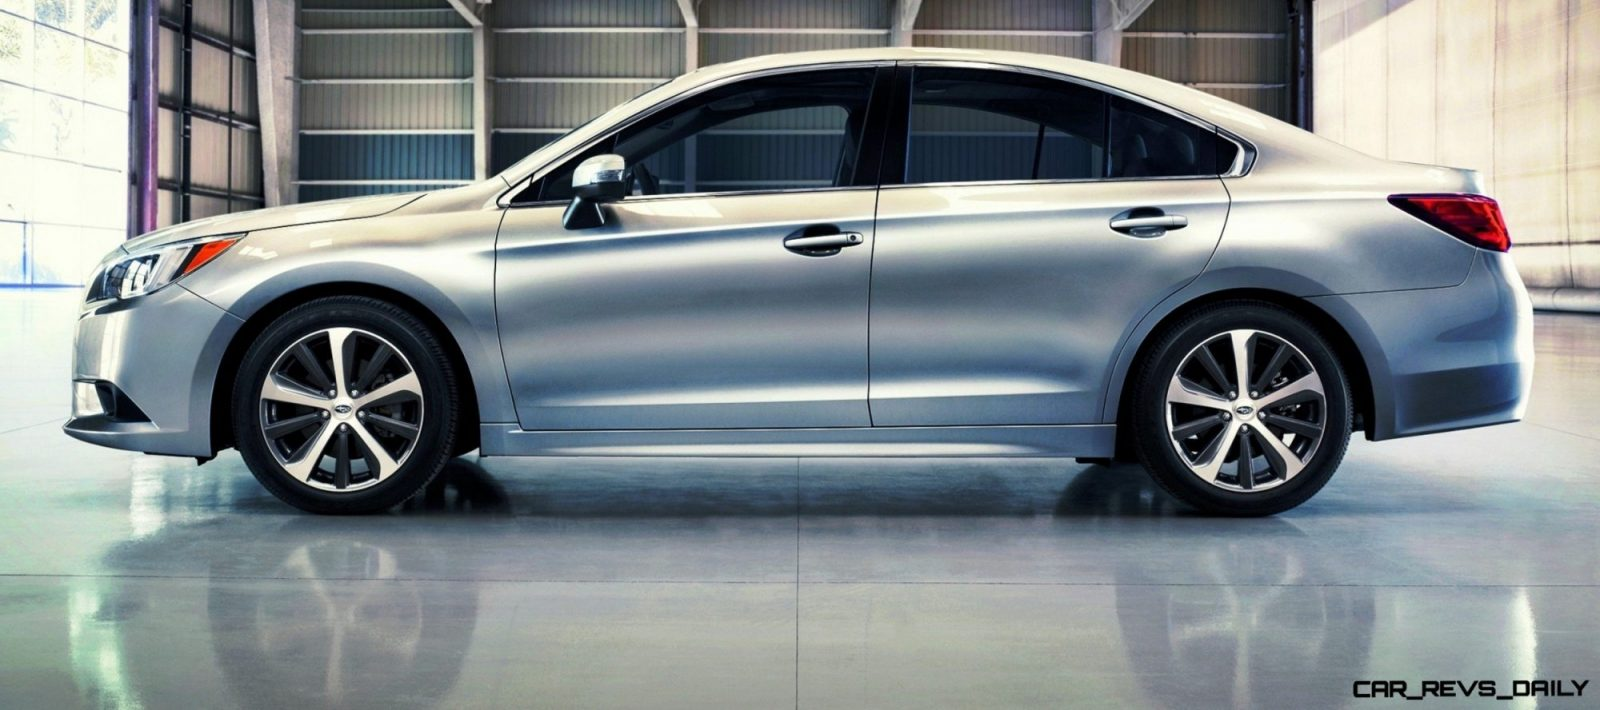 2015 Subaru Legacy Sedan -- More Lux and Tech in Cabin -- Finally Some Exterior Style -- Even 36MPG Highway  12